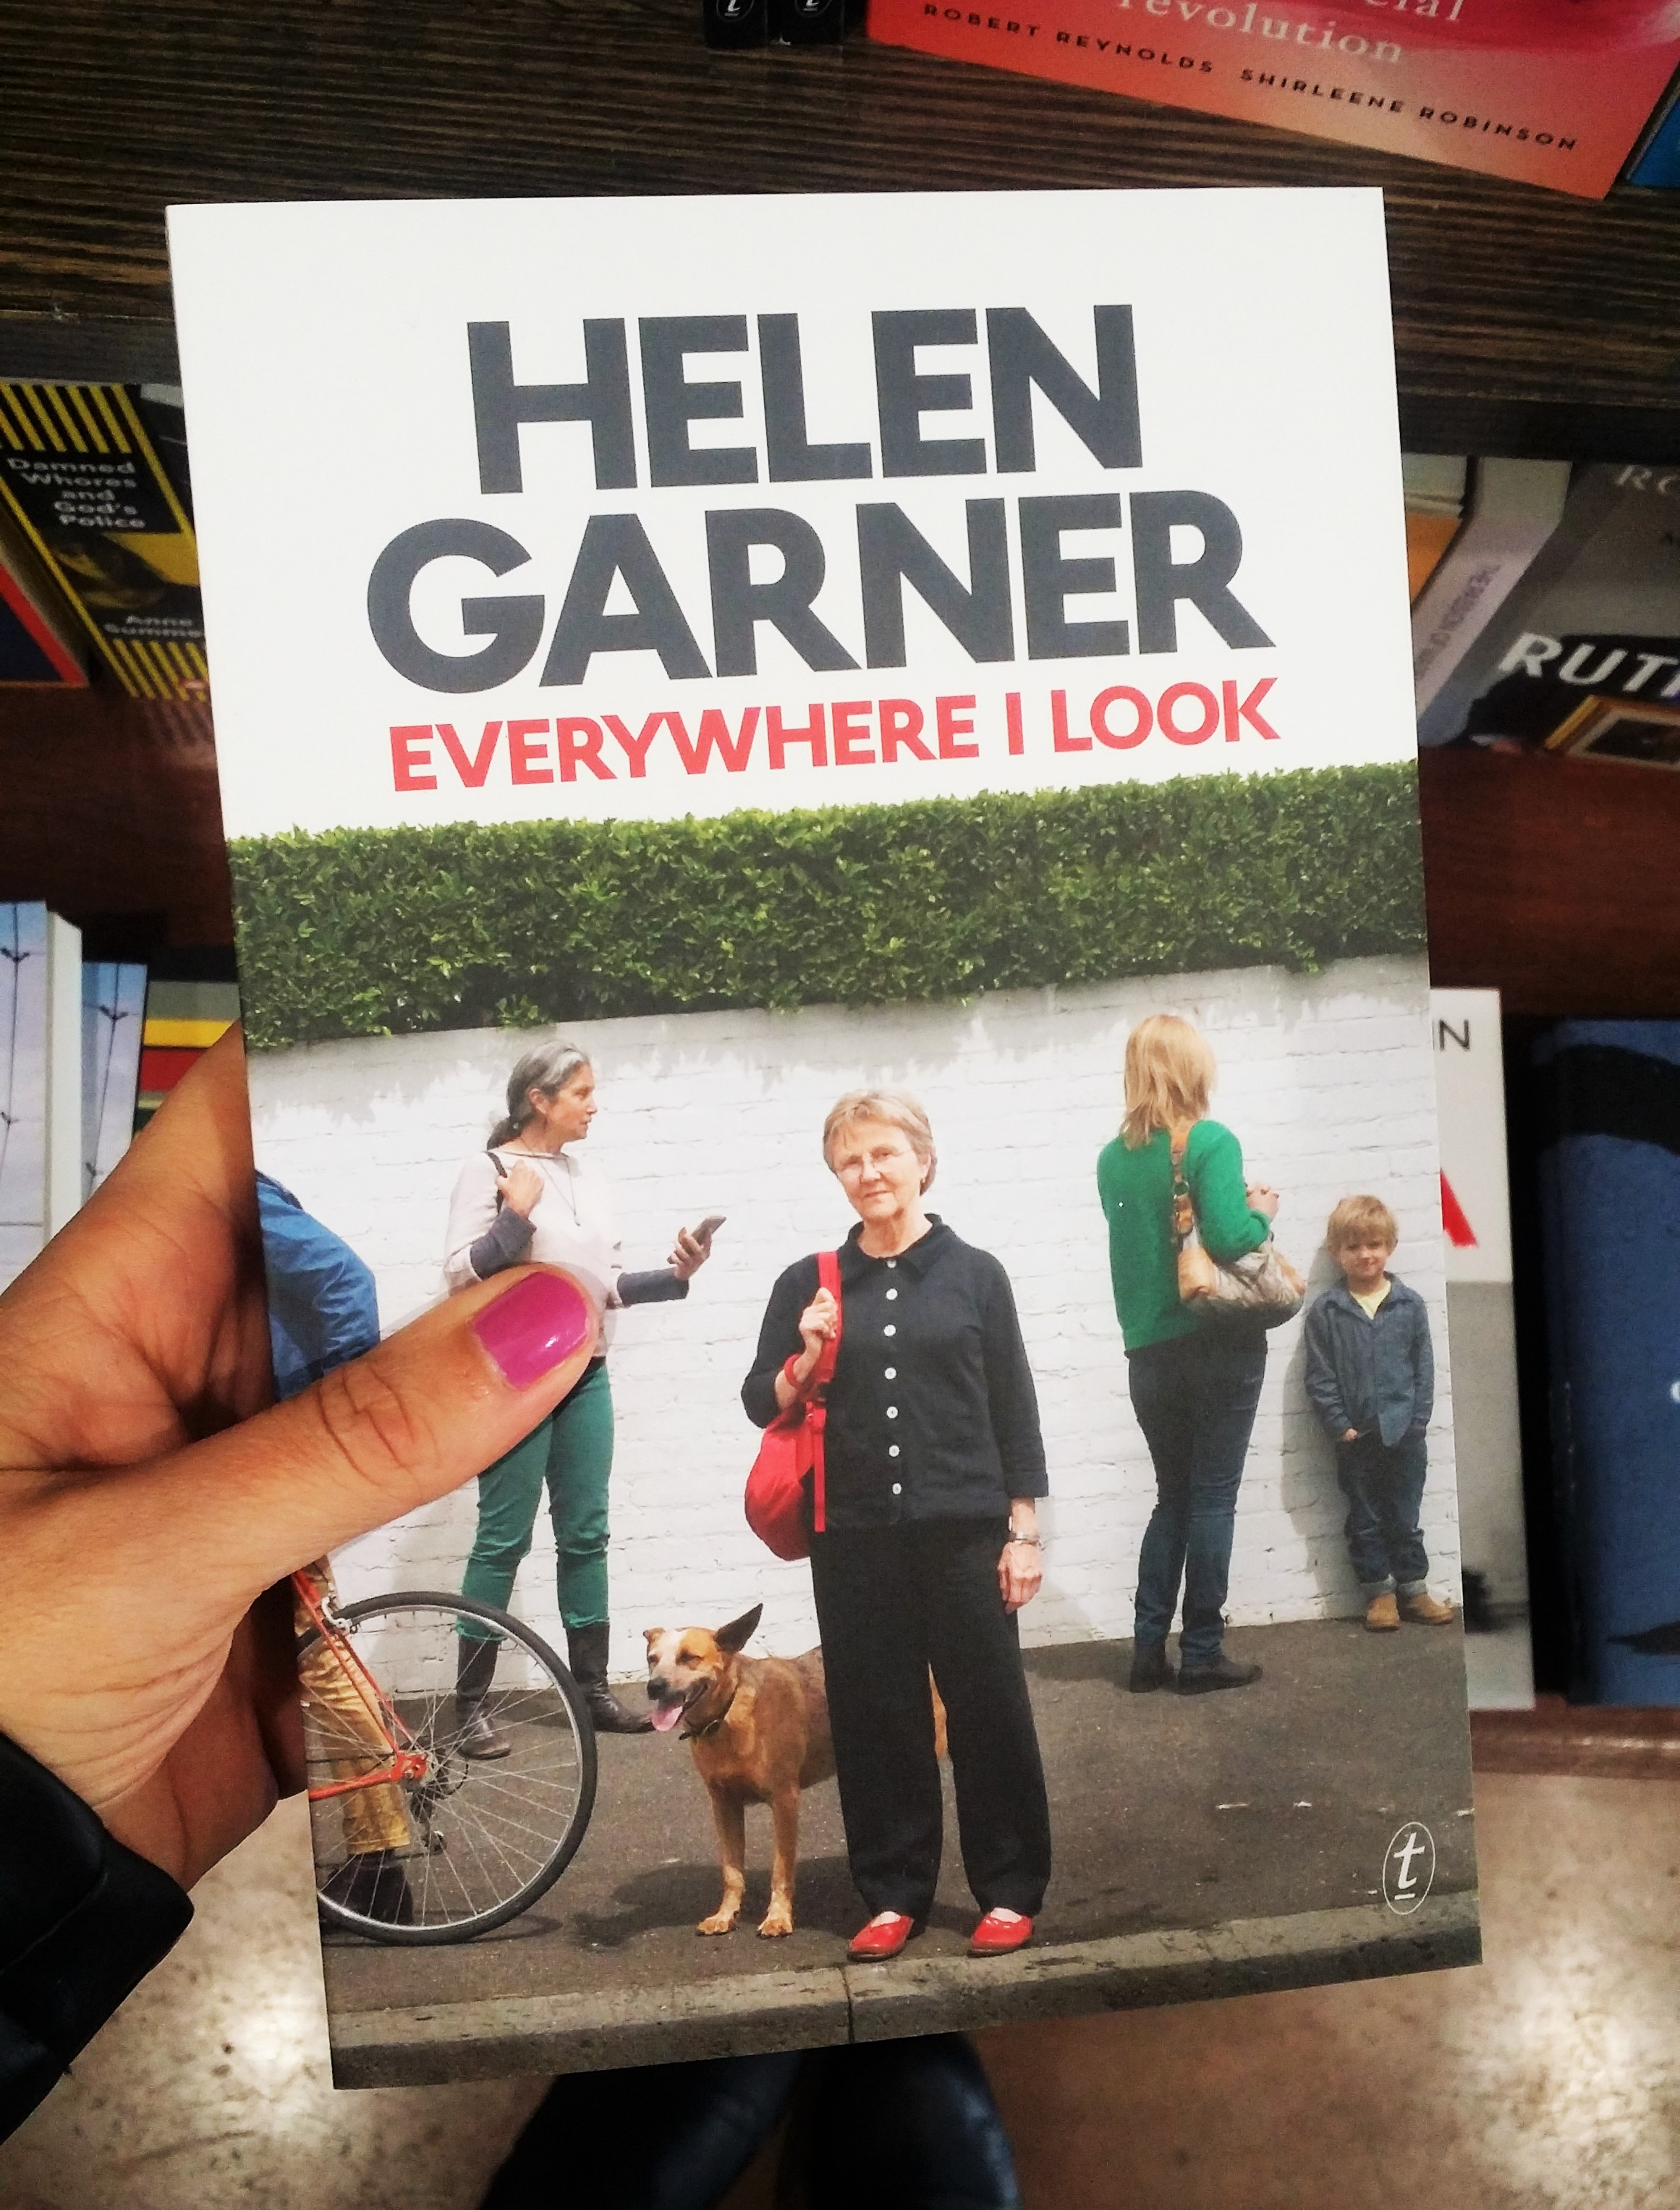 Everywhere I look Helen Garner